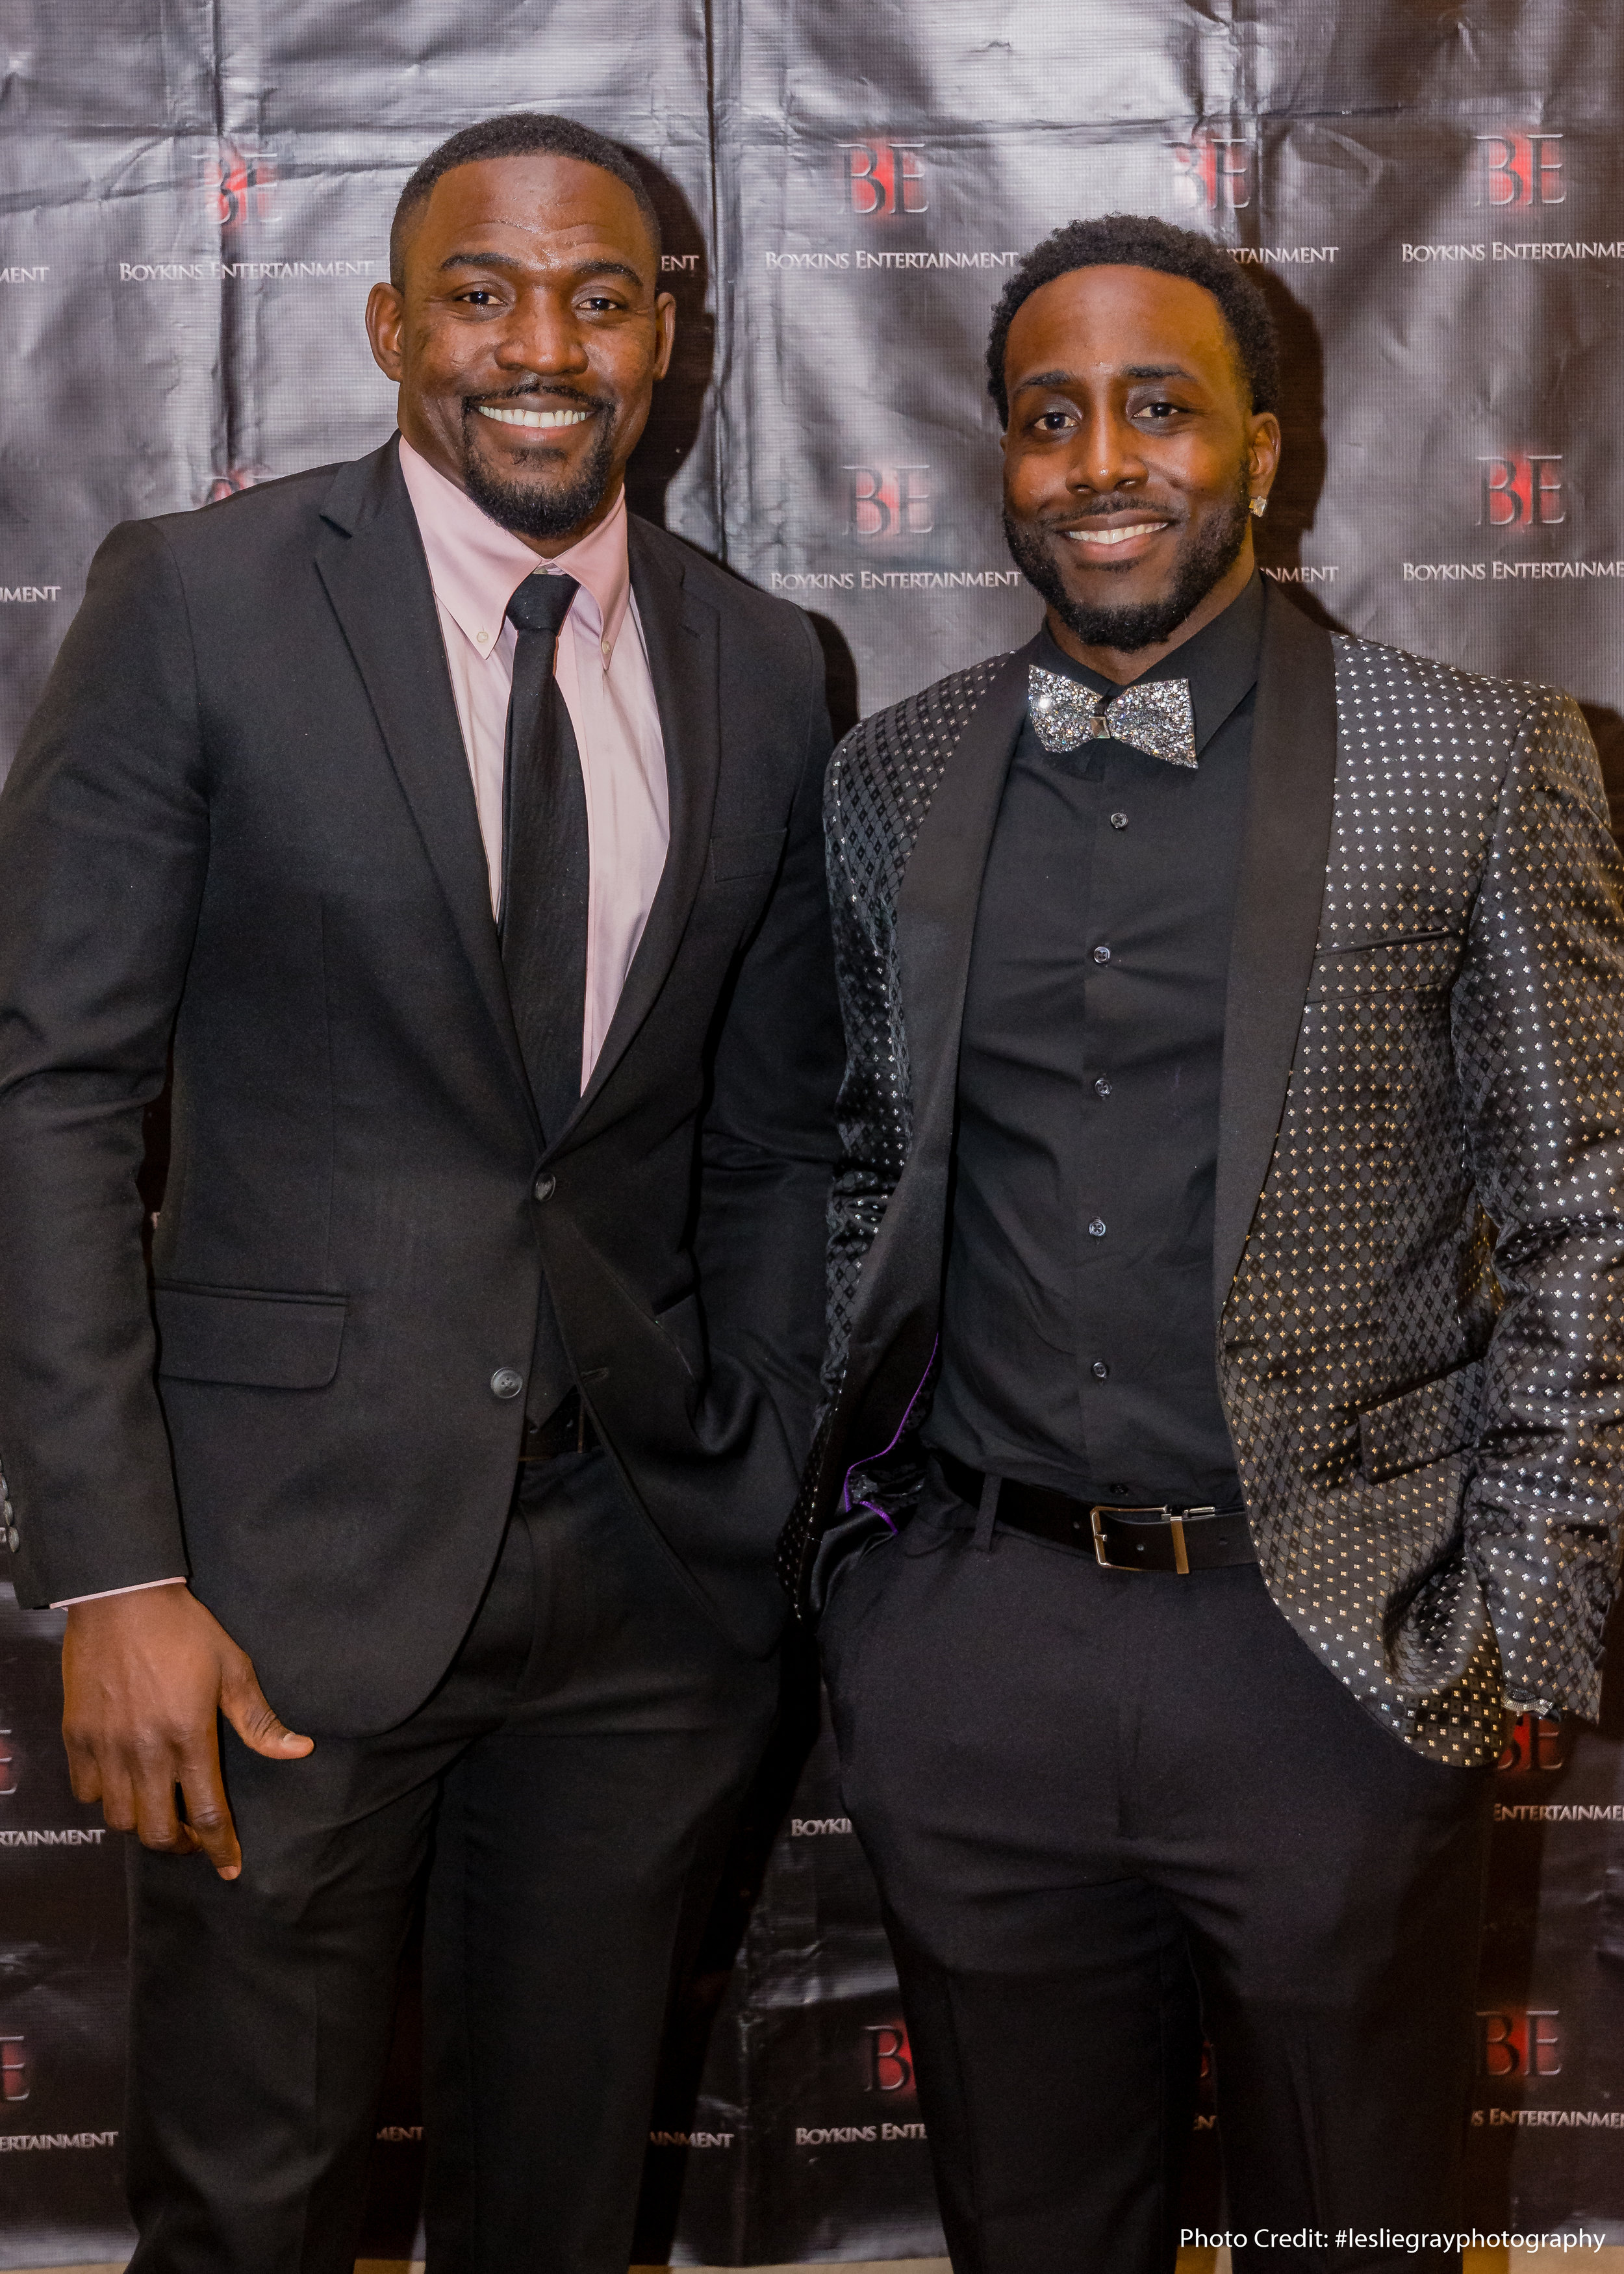 Rod Harper and Troy Williams at the red carpet premiere of The Watchman's Edict | Courtesy of Leslie Gray Photography